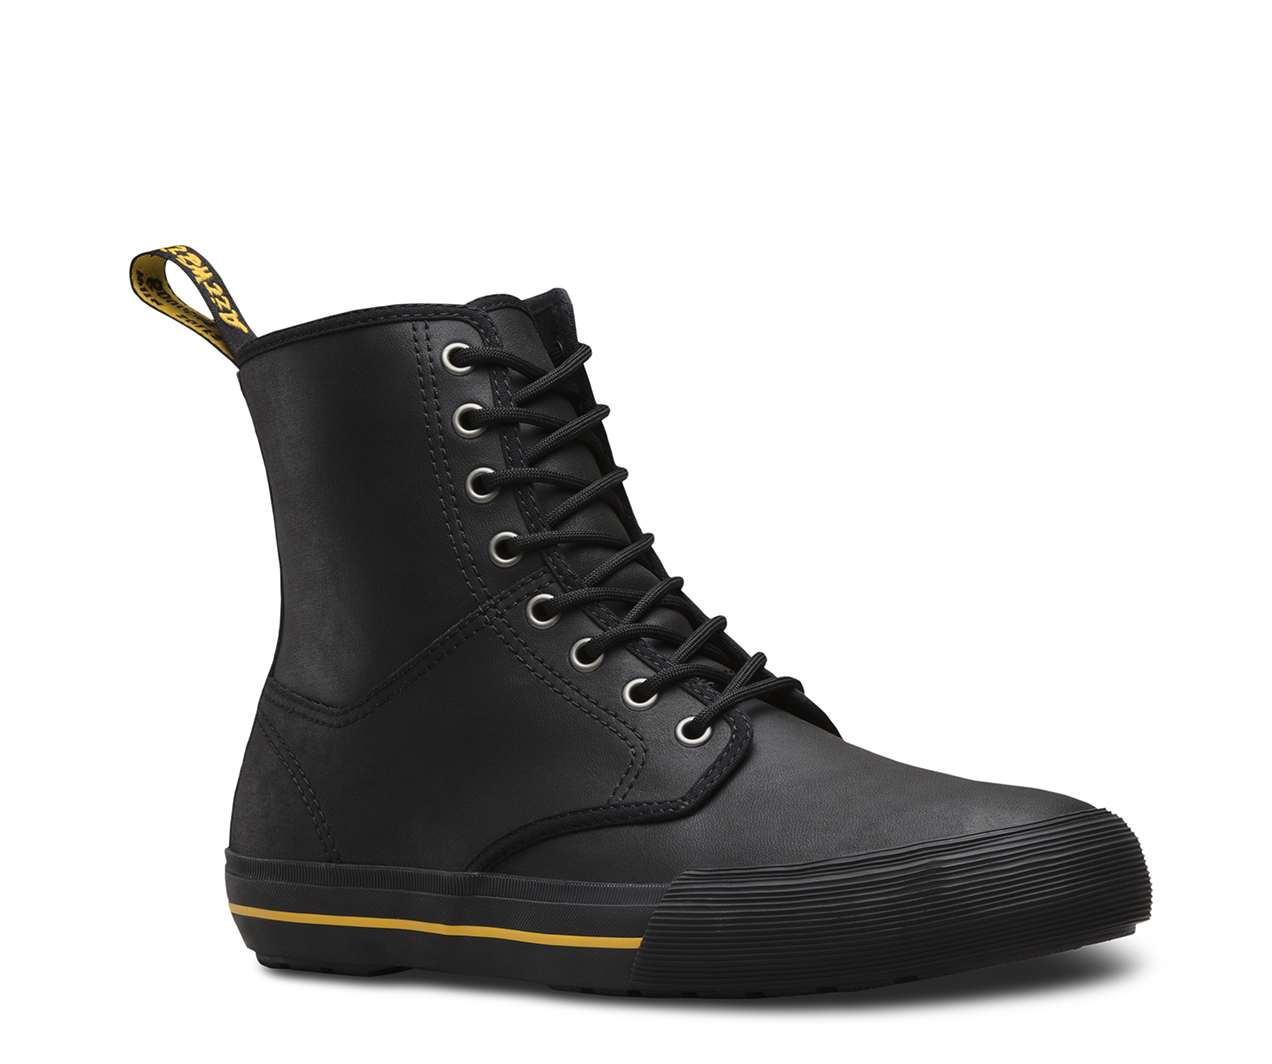 WINSTED LEATHER | Casual Street Shoes & Boots | Official Dr Martens Store